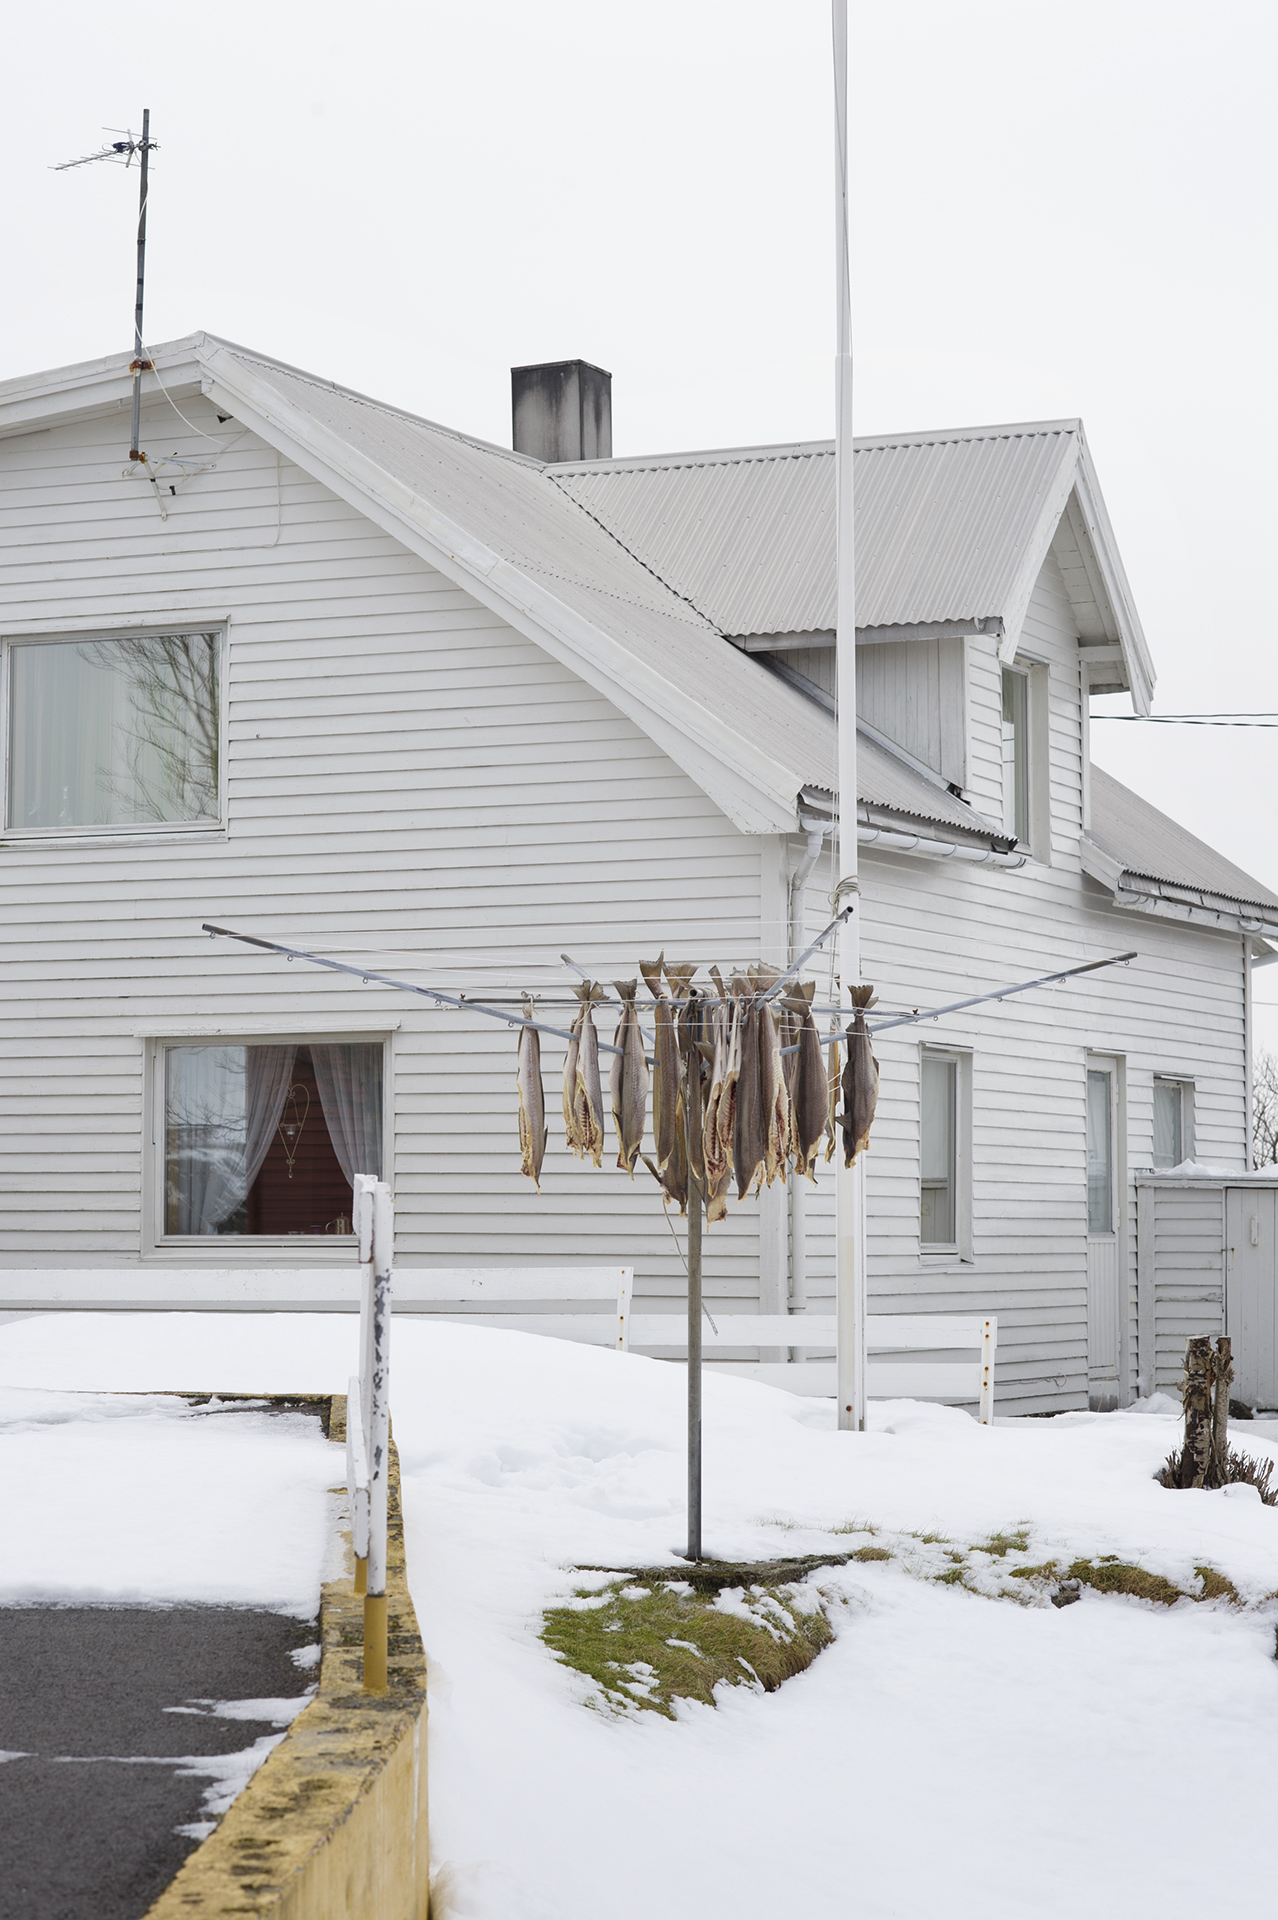 Stockfish. Henningsvær. From the book The Lofoten Fishery.